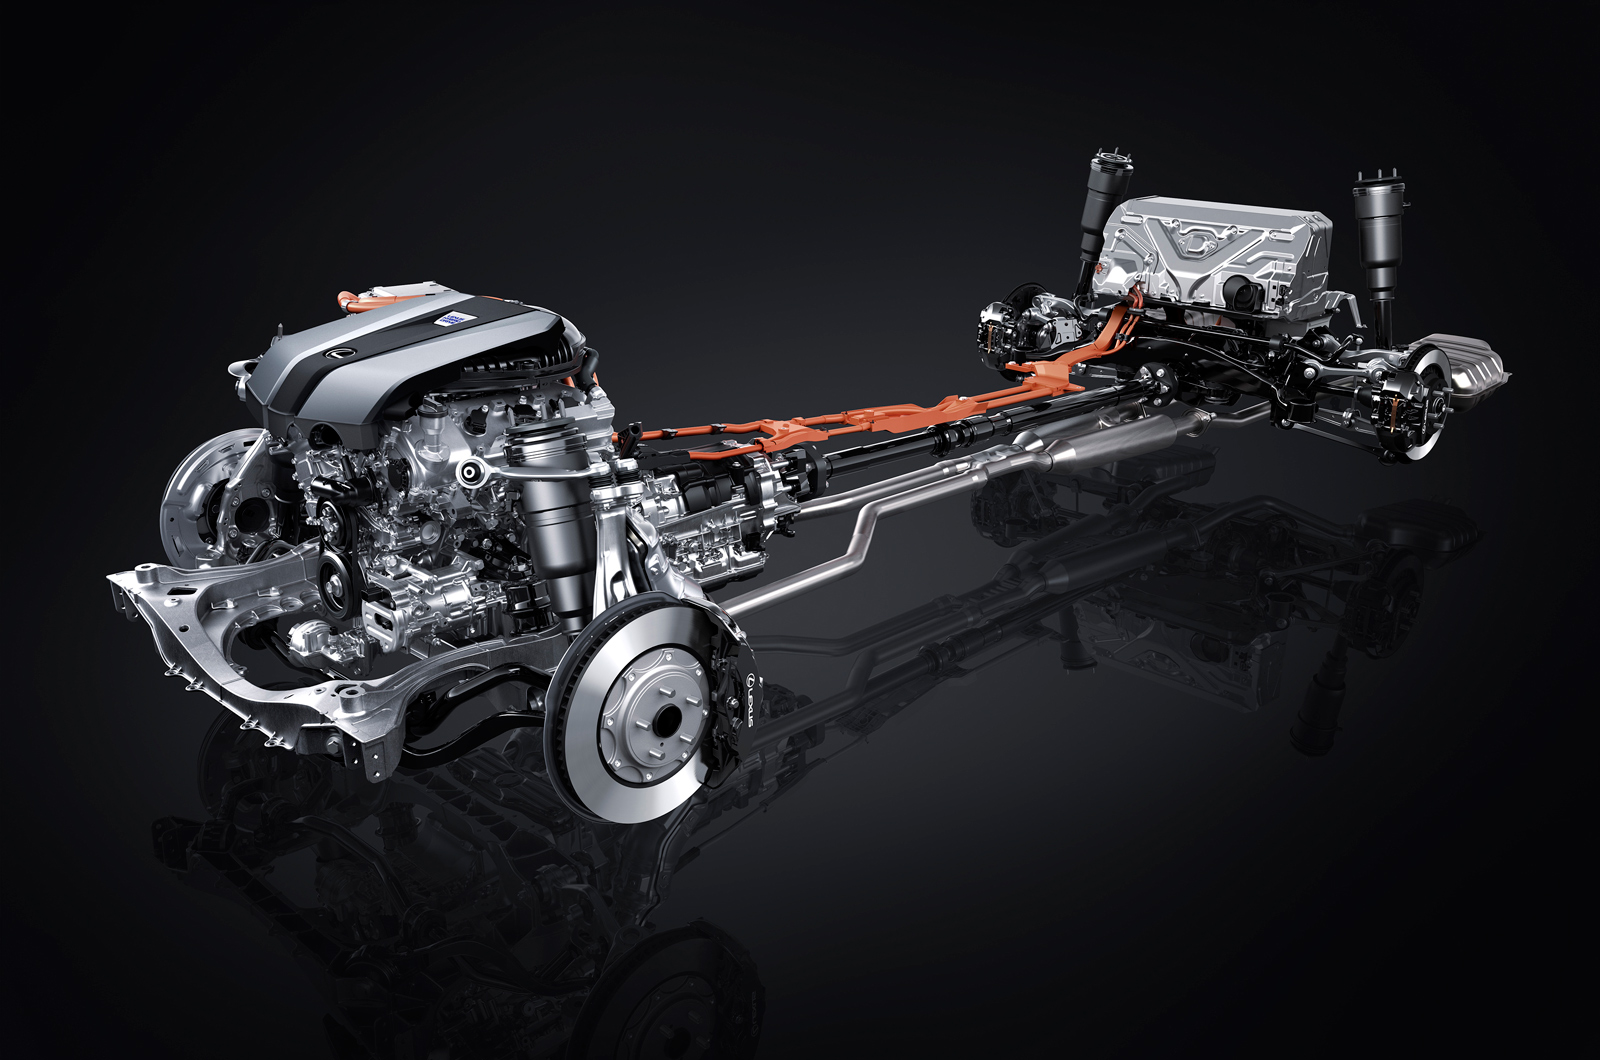 Lexus Ls 500h On Show In Geneva Autocar Power Plant Layout Arrangement Technical Illustrations The Systems Car With Powerplant Located At Front And Battery Pack Back